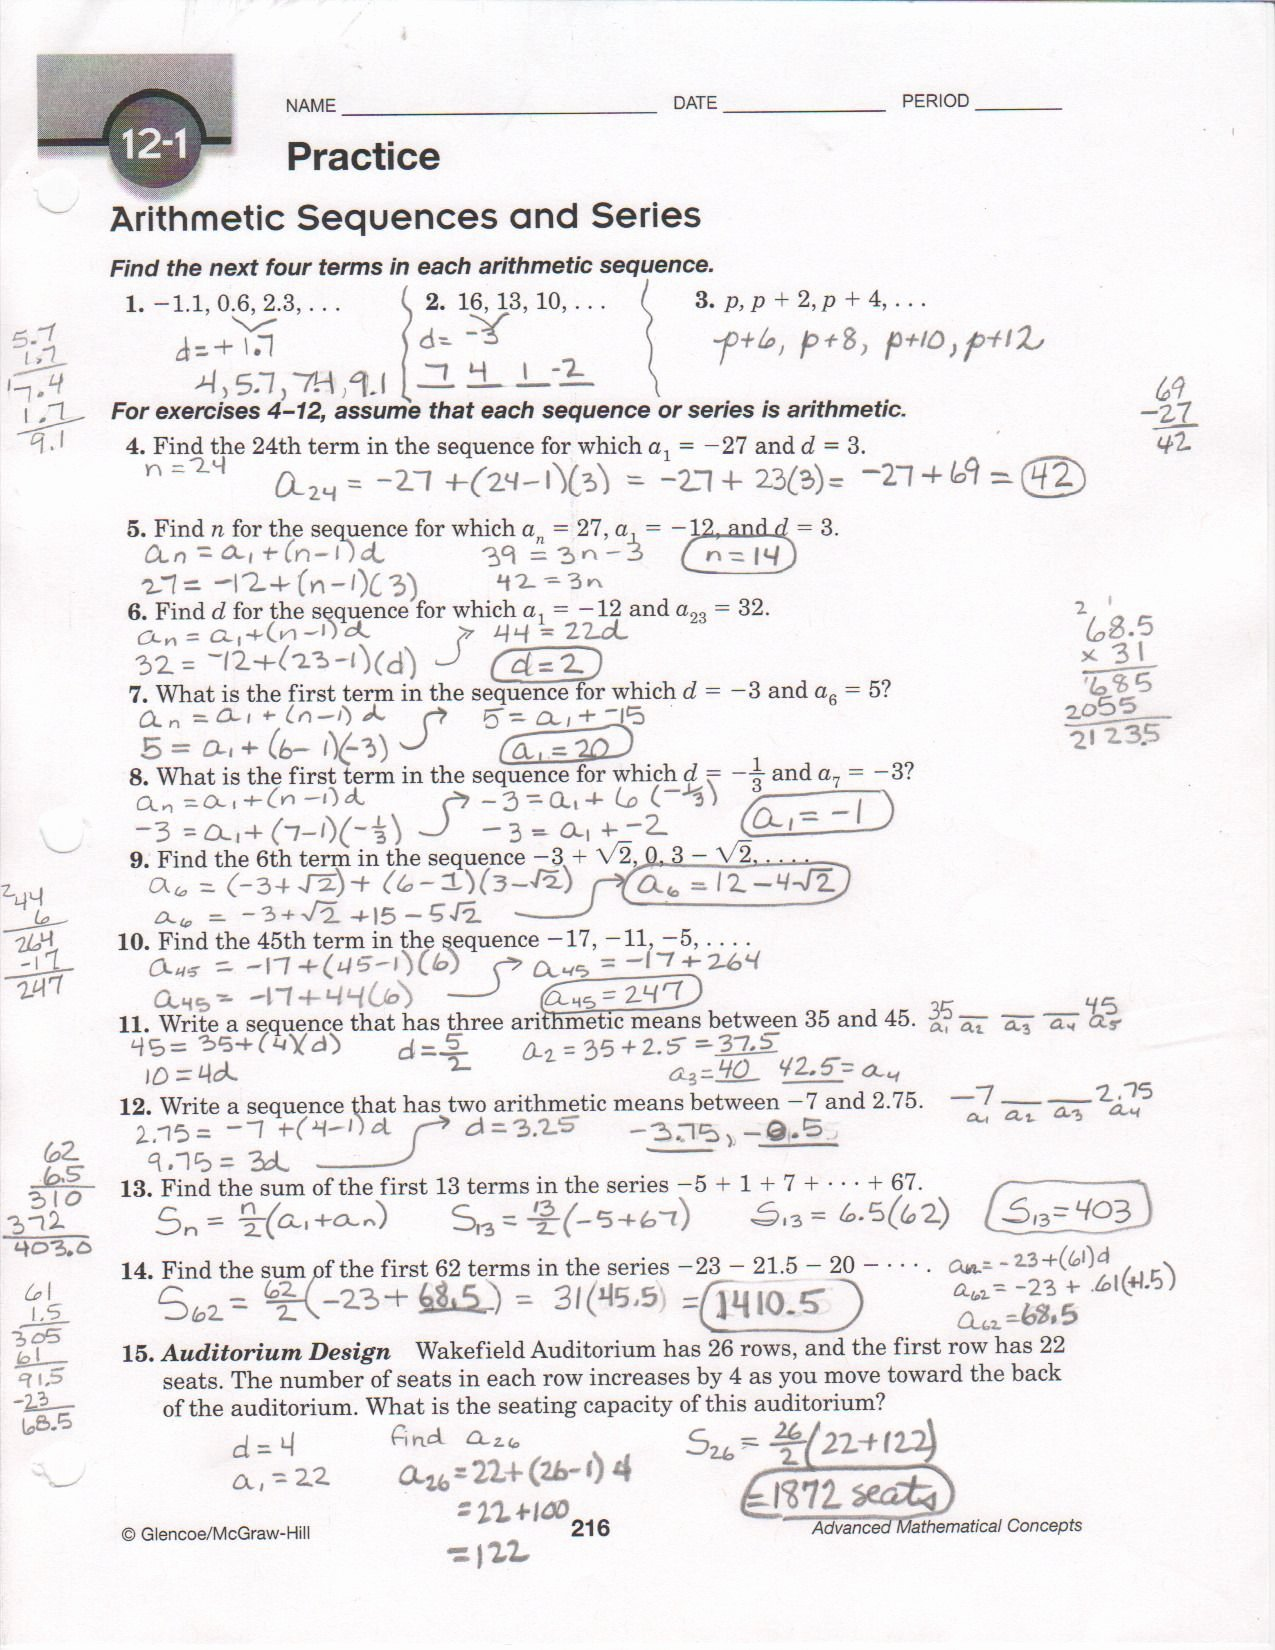 Geometric Sequences Worksheet Answers Luxury Arithmetic Sequences Worksheet 1 Answer Key